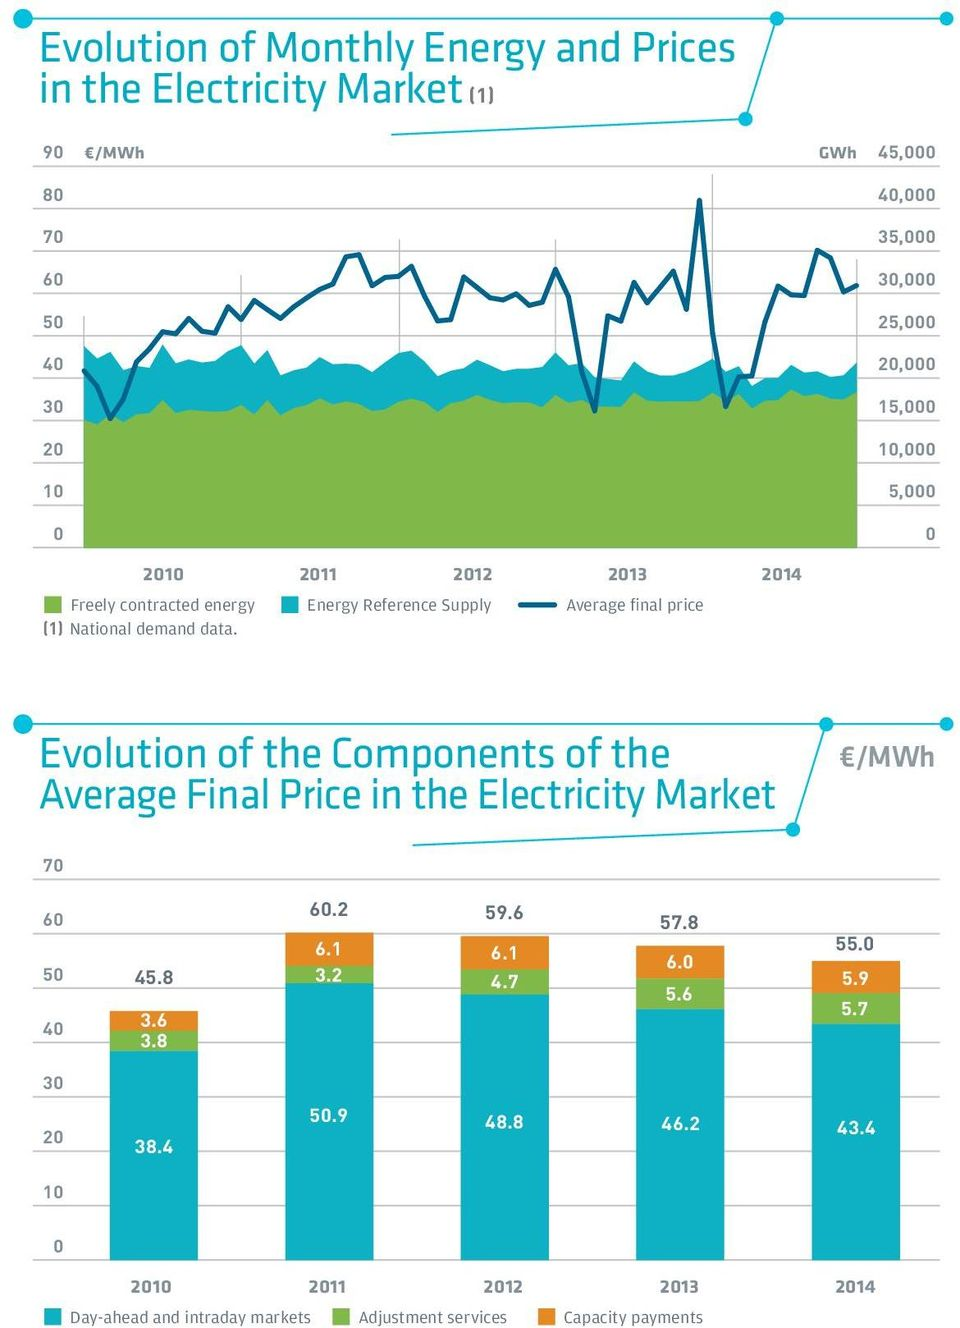 Evolution of the Components of the Average Final Price in the Electricity Market /MWh 7 6 5 4 6.2 6.1 45.8 3.2 3.6 3.8 59.6 6.